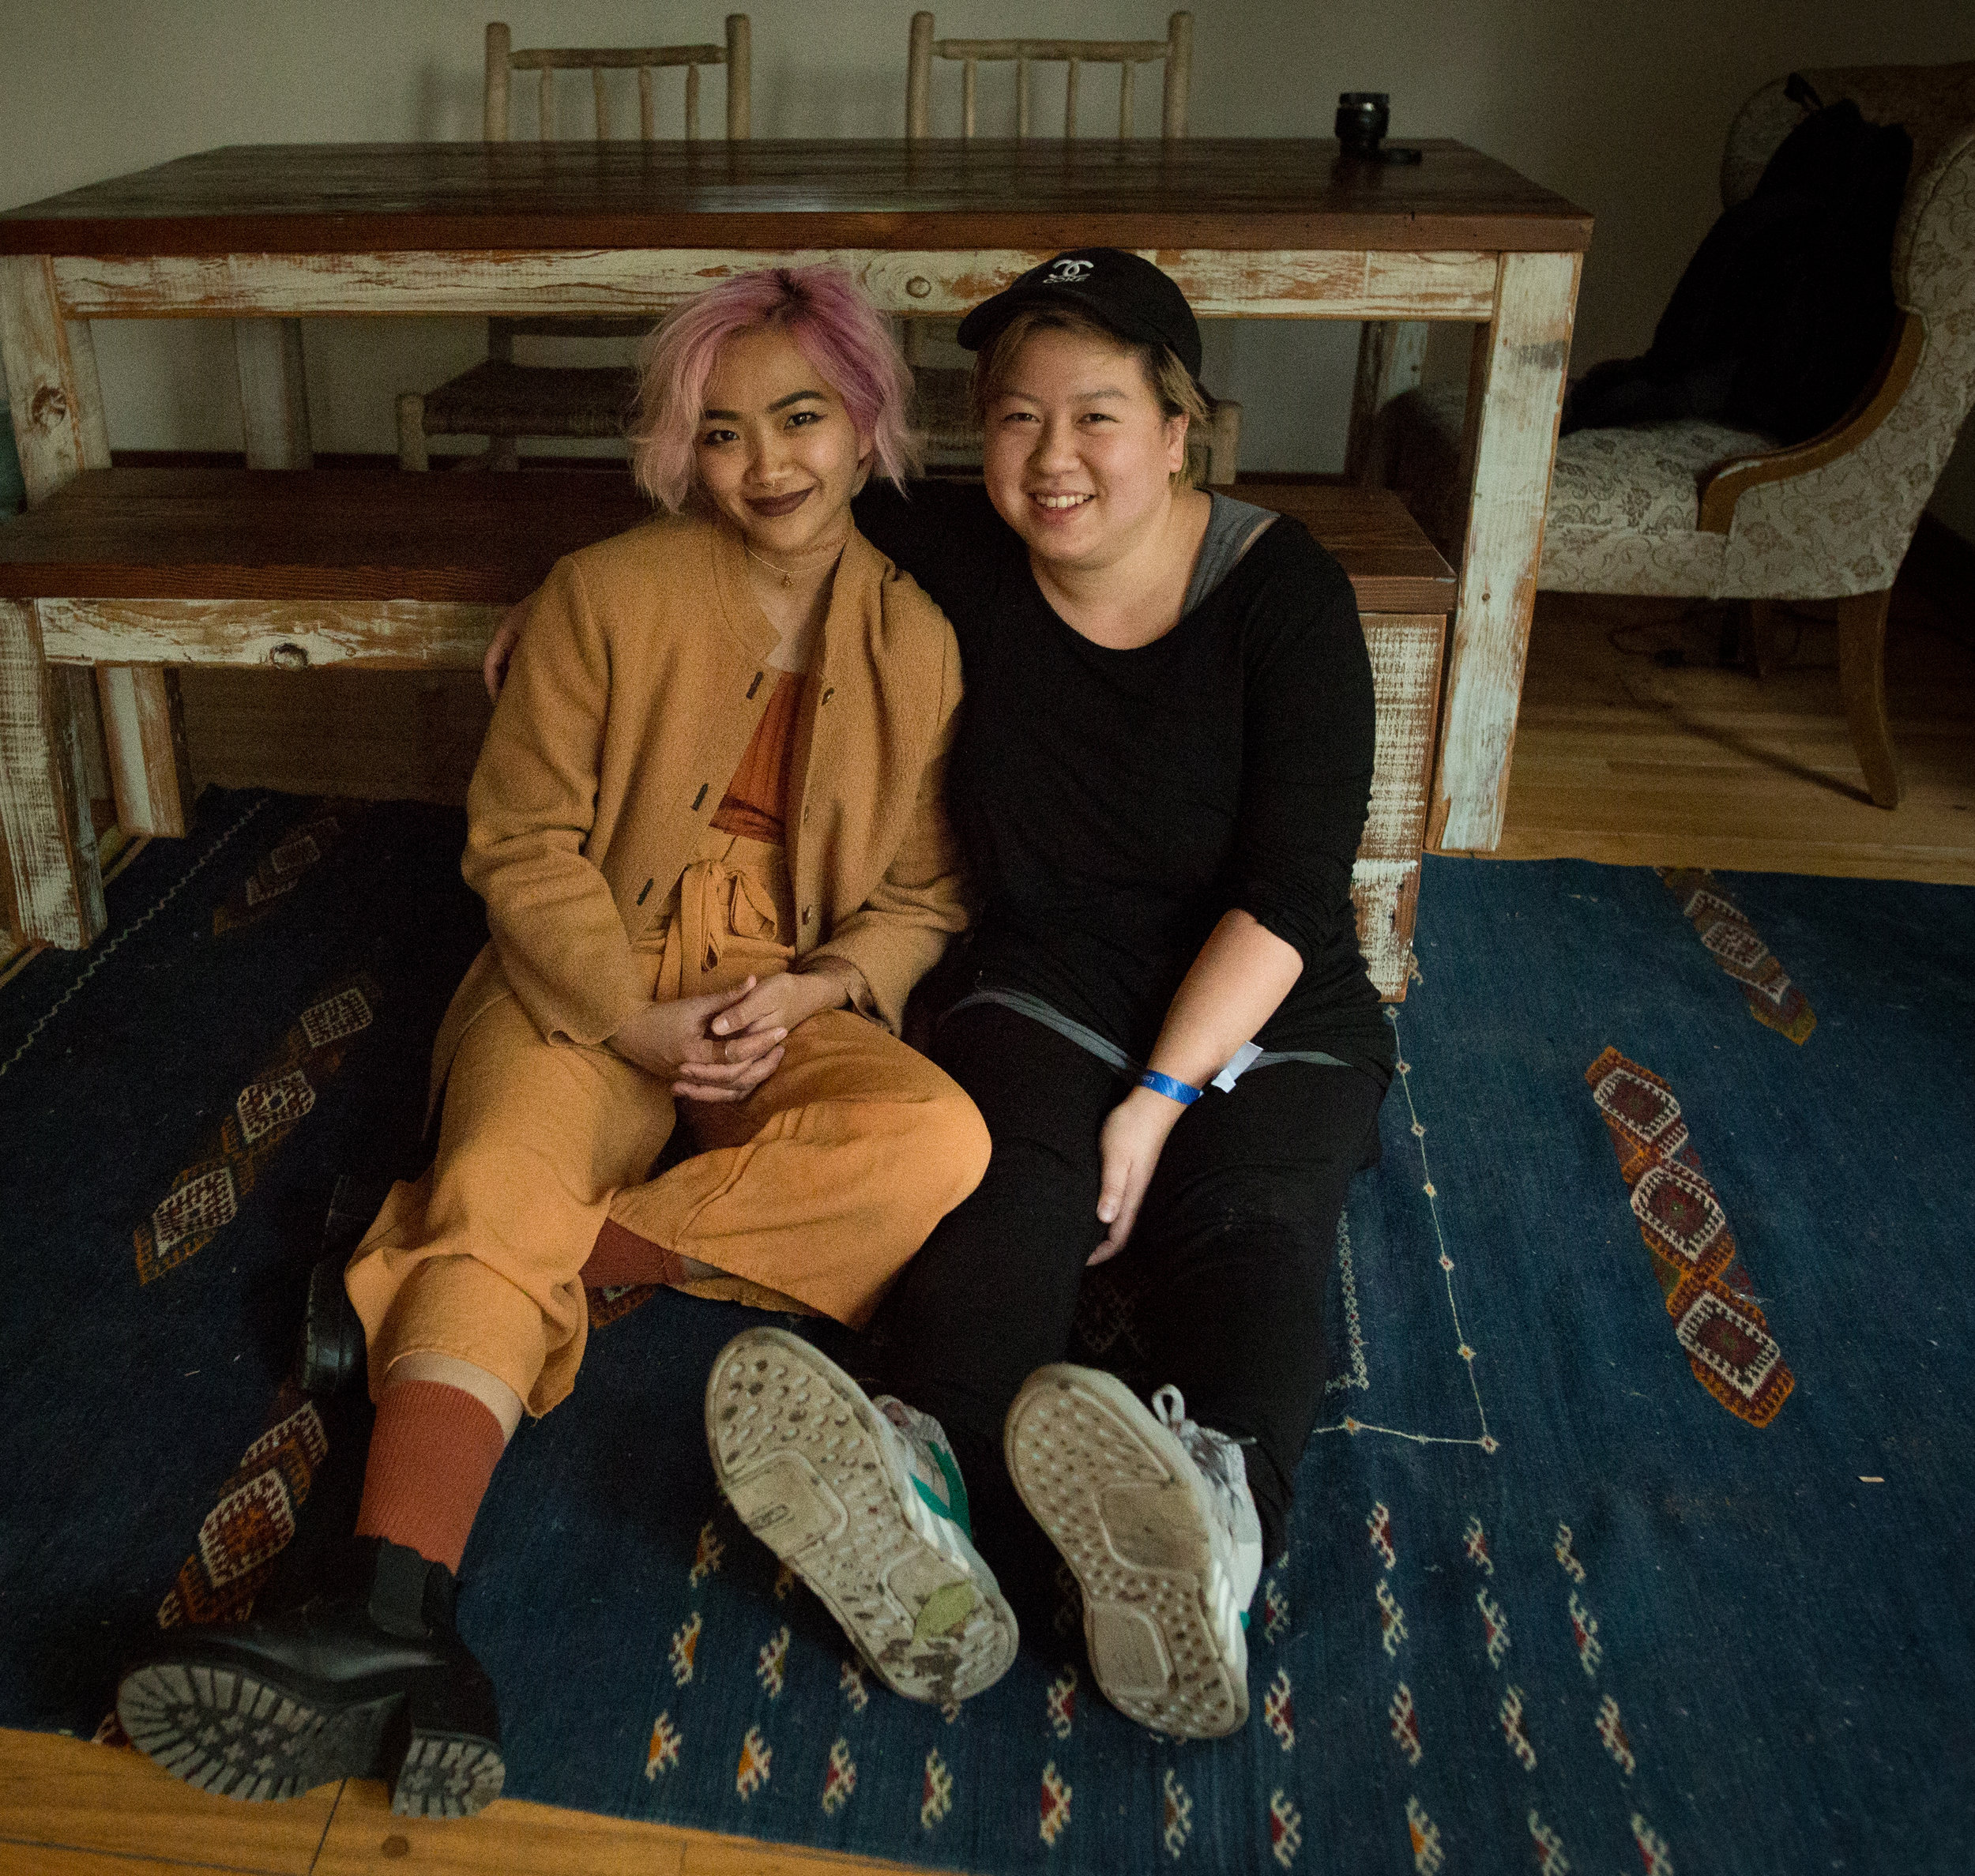 chilling like villains: nenci (left) and her collaborator Leviathe (right)  photography by tiffany leah chung ( @tiffanyleahchung )